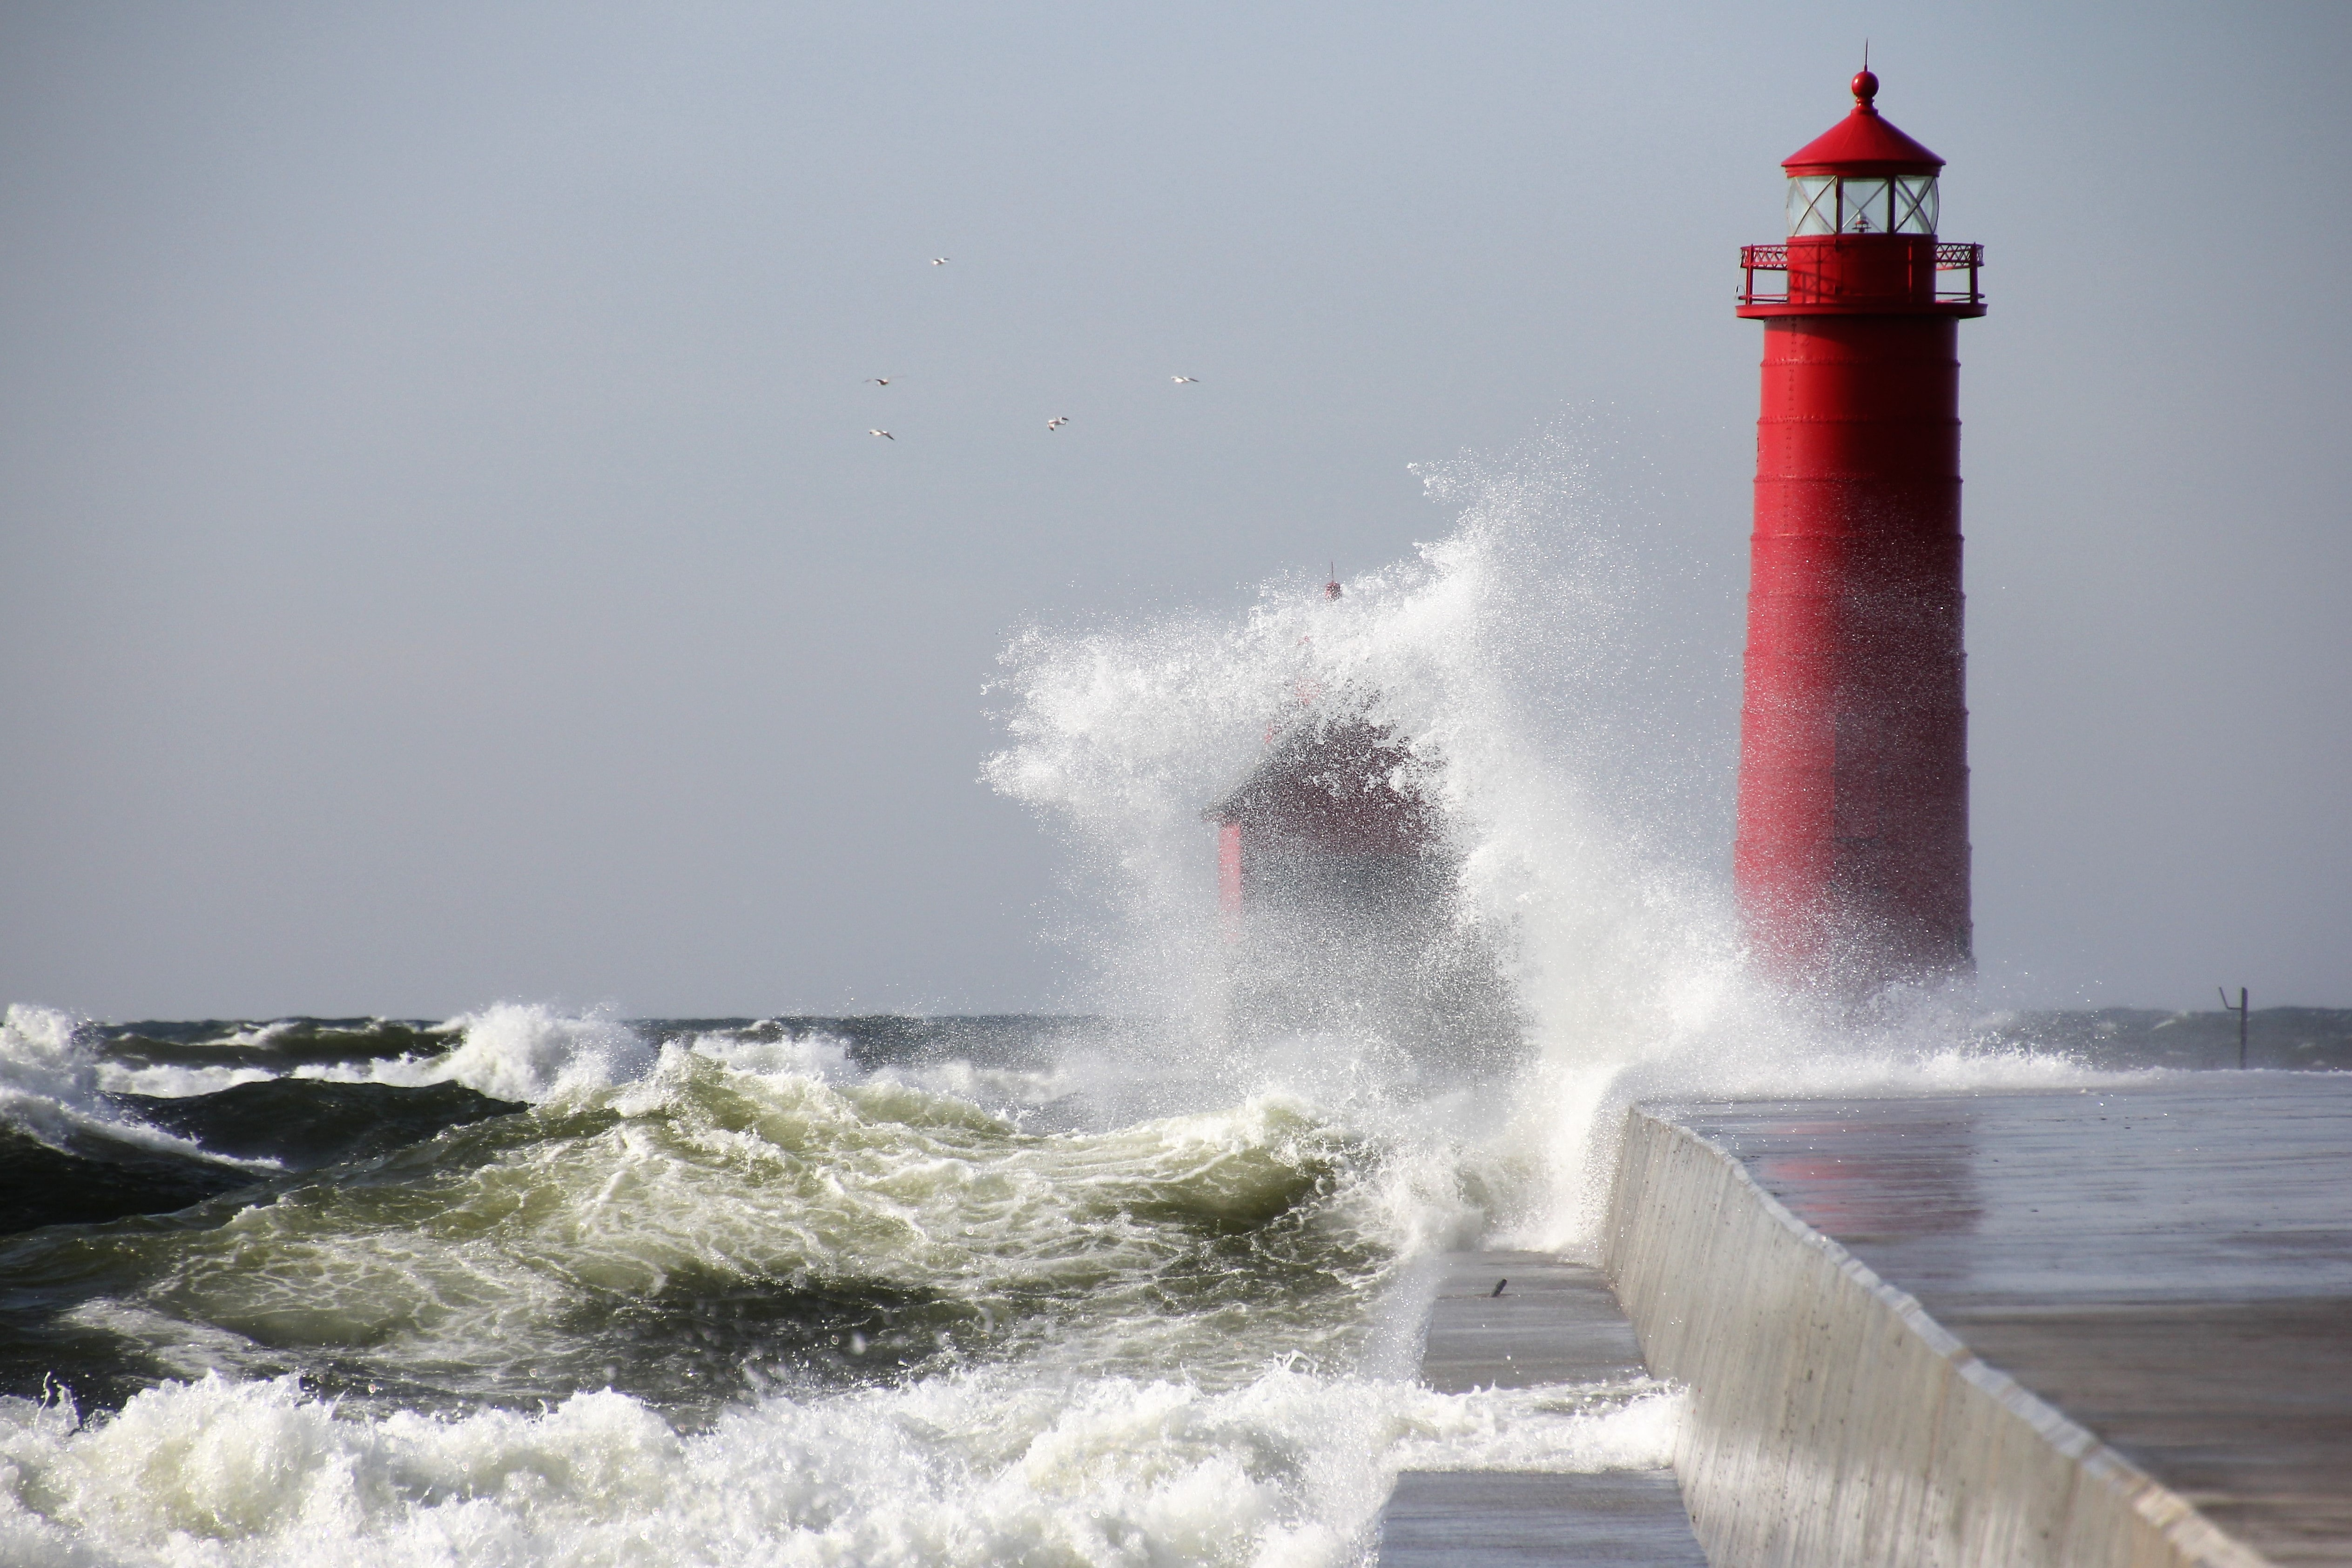 waves crushing the red lighthouse under gray sky during daytime